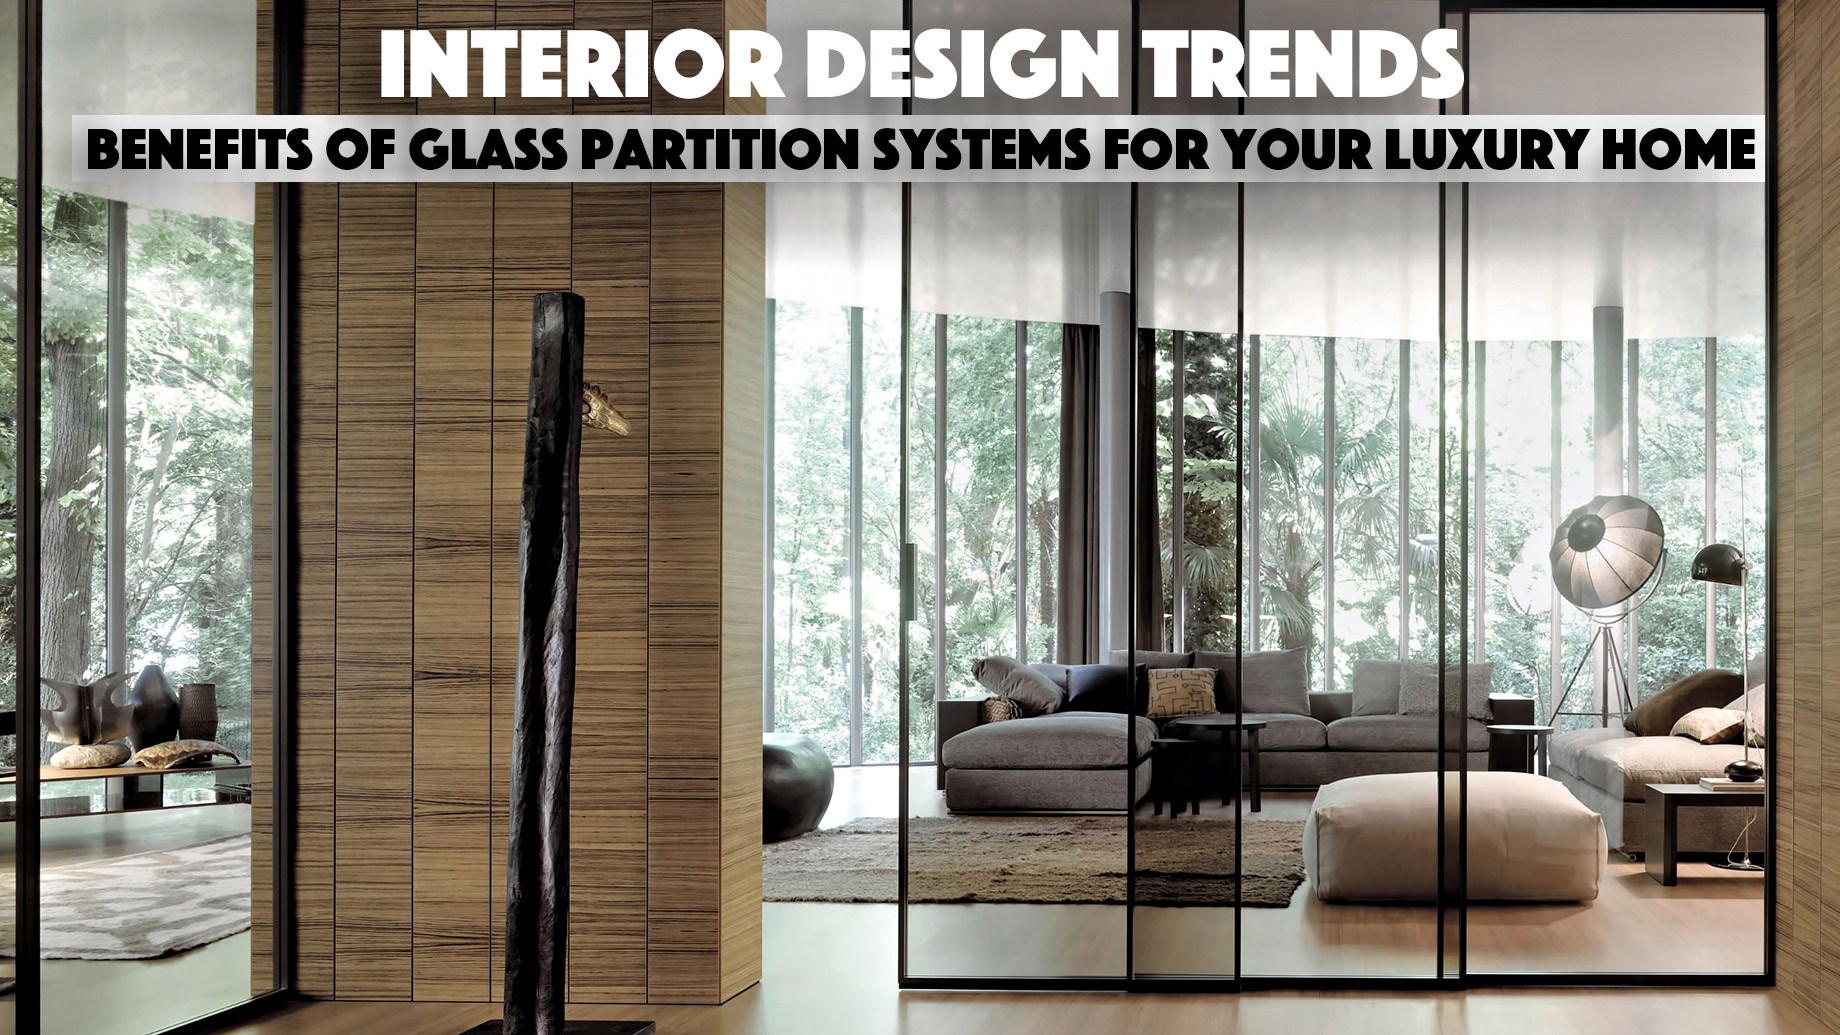 Interior Design Trends - Benefits Of Glass Partition Systems For Your Luxury Home